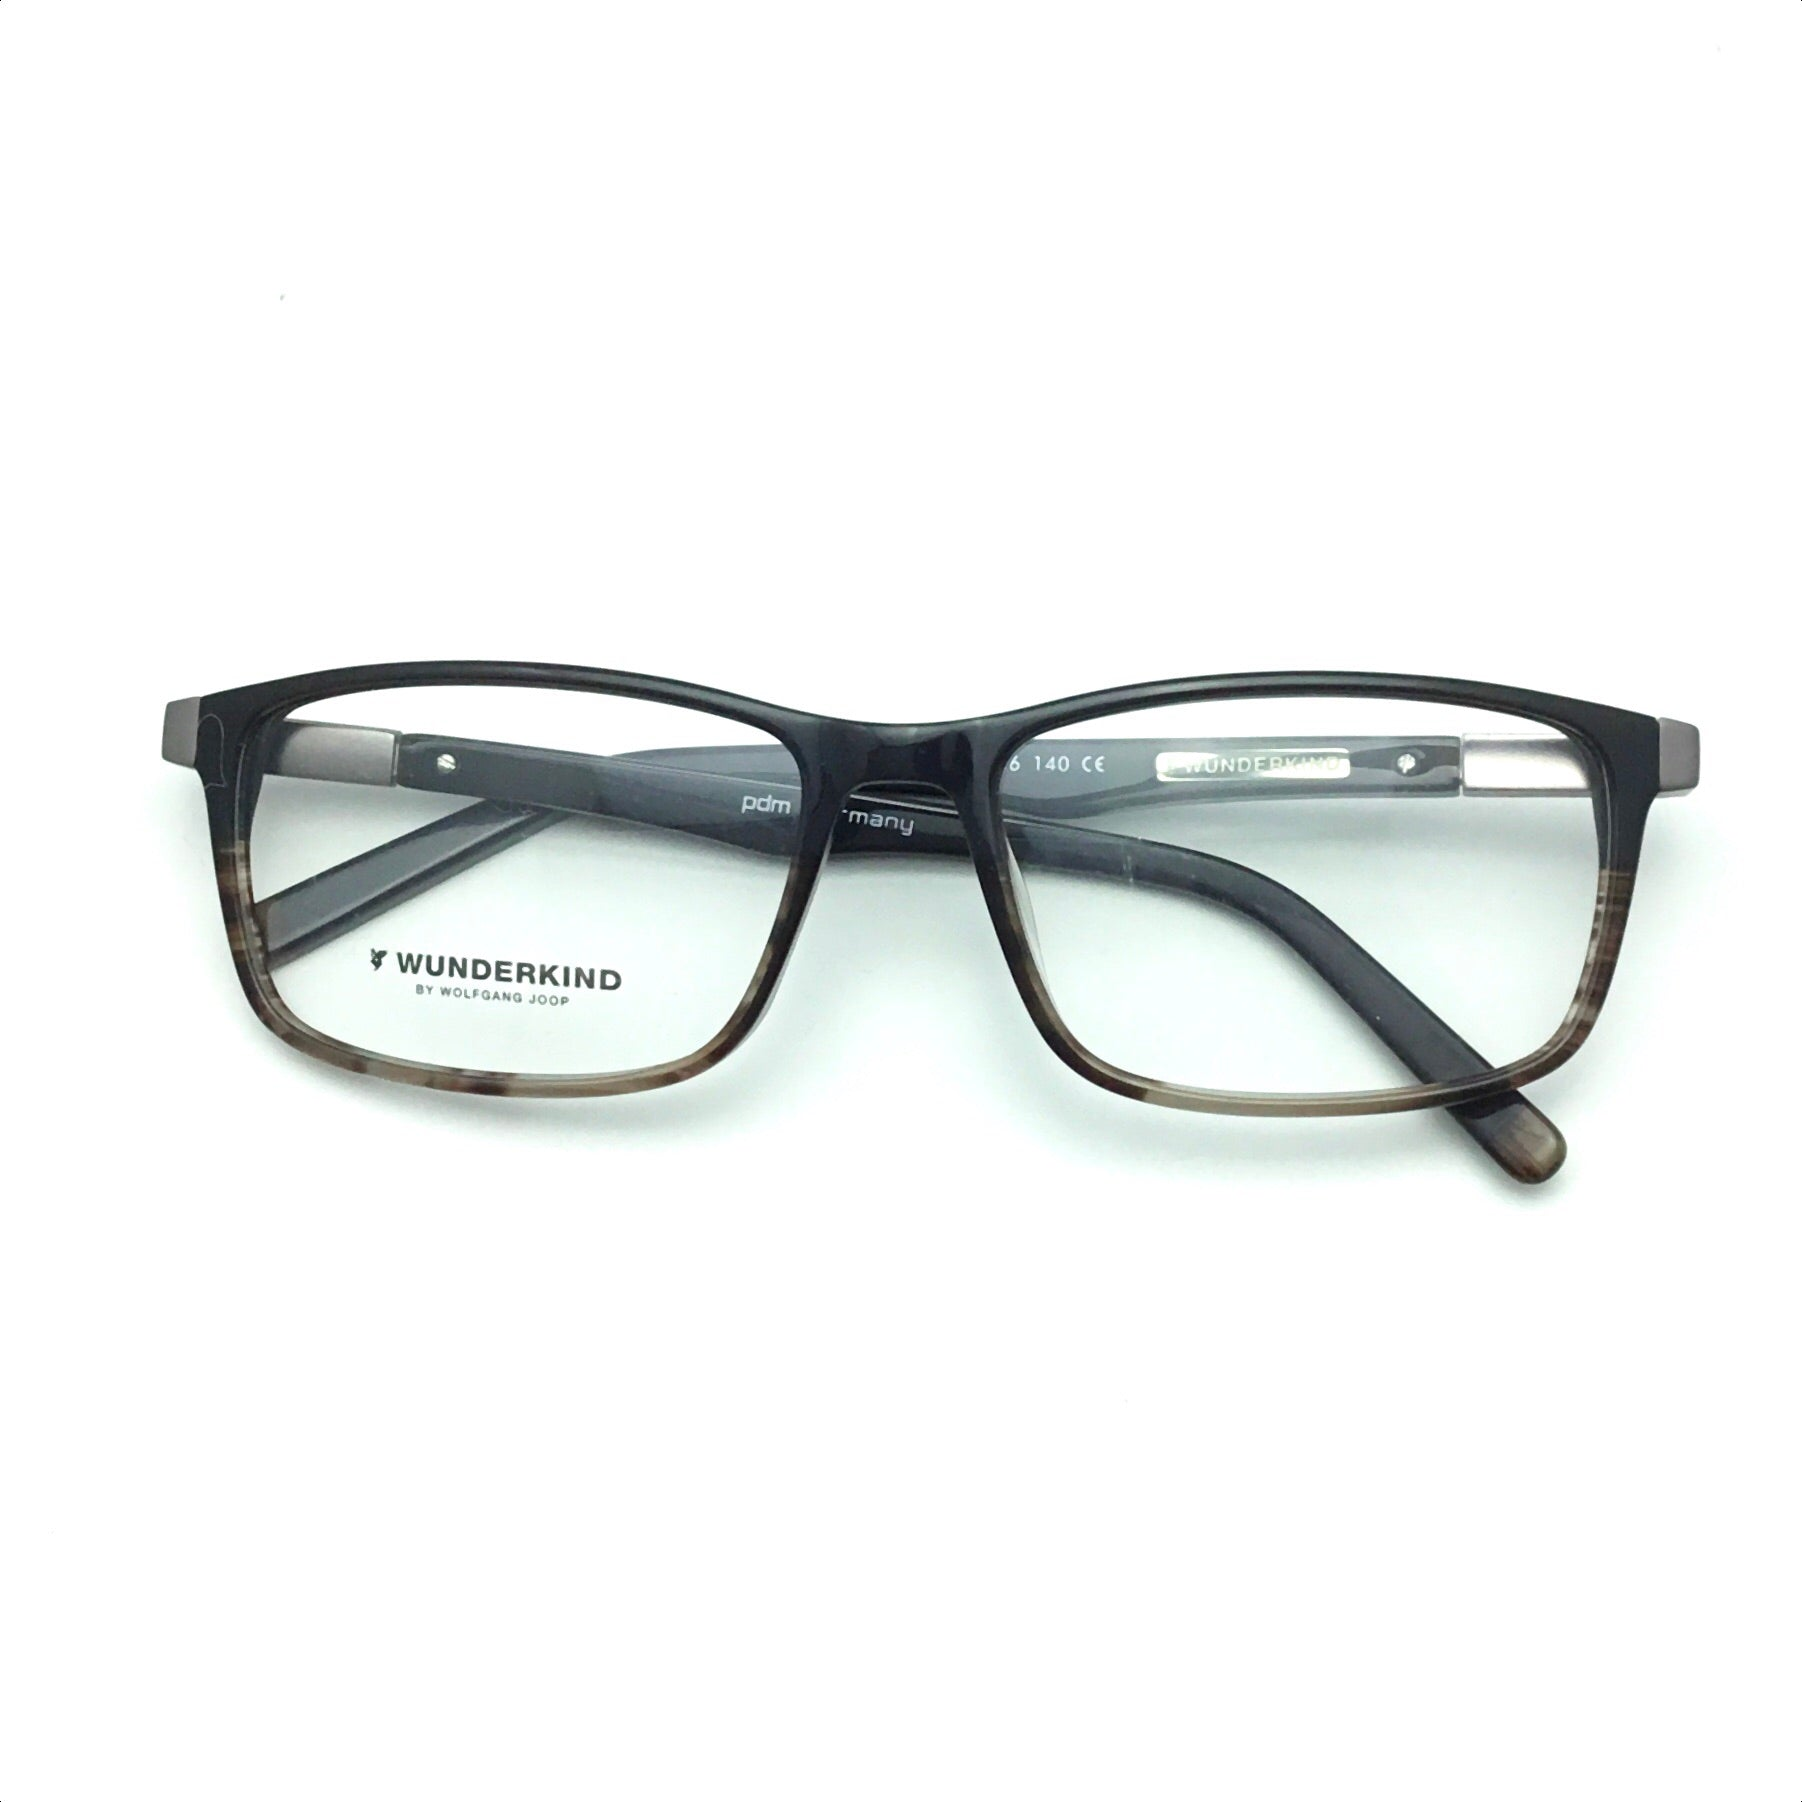 Wunder Kind glasses $279 GERMANY O9